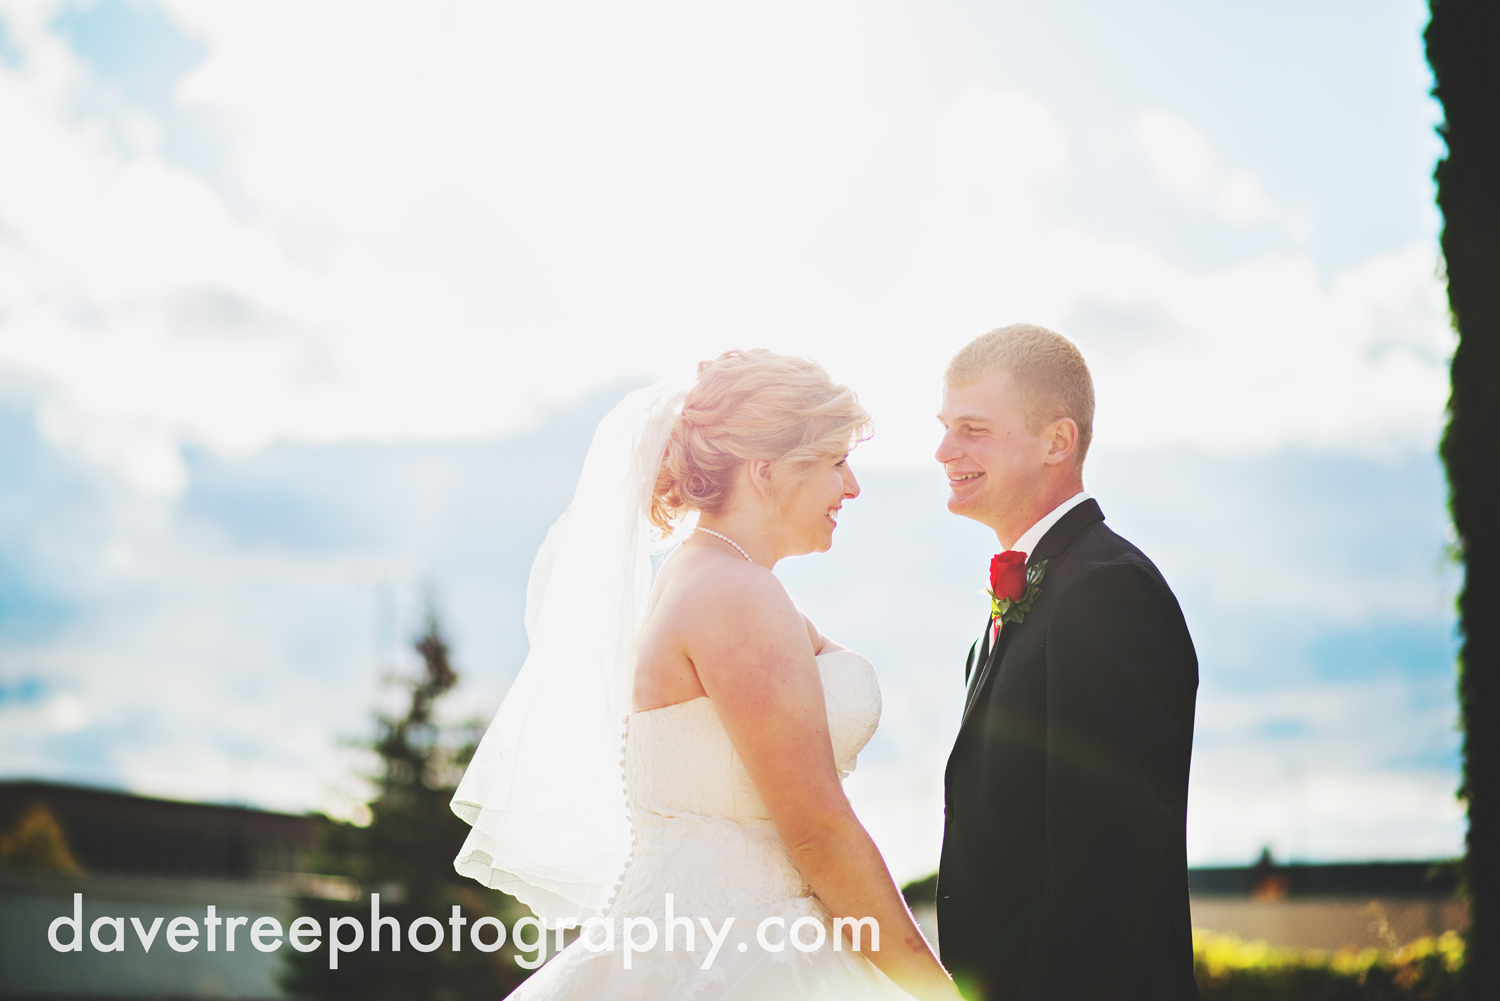 holland_wedding_photographer_07.jpg